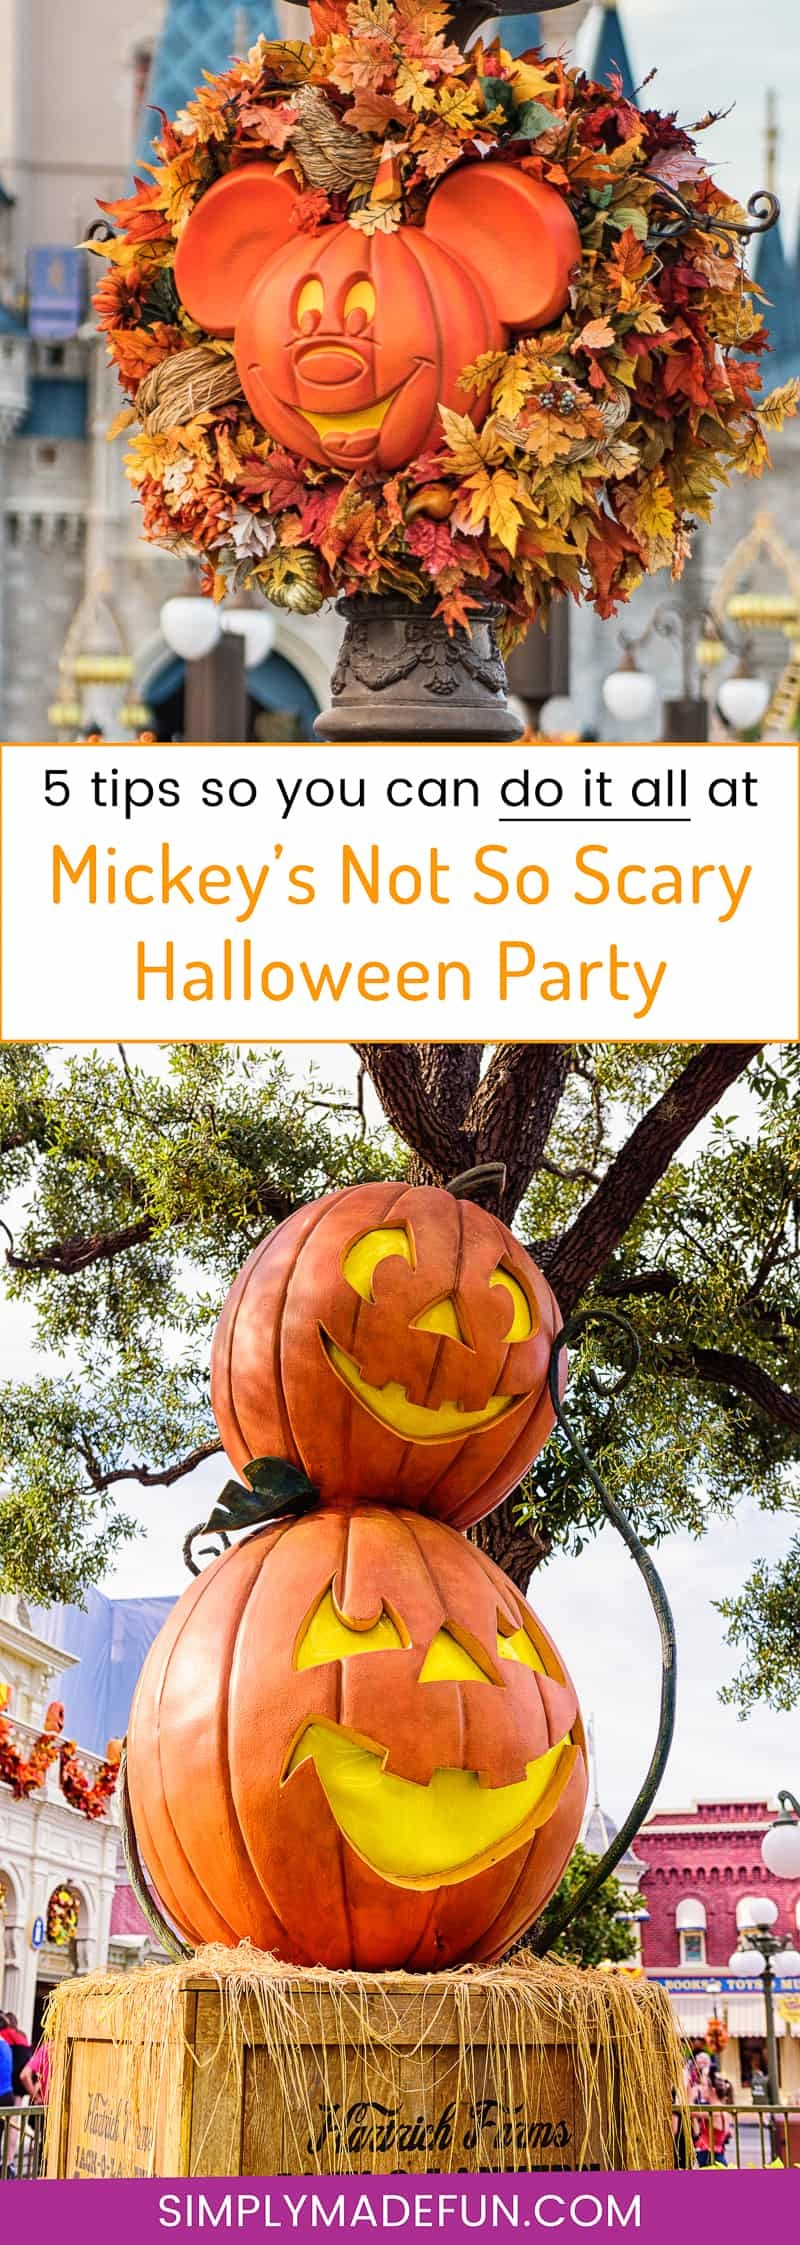 Mickey's Not So Scary Halloween Party - Get the most out of your Disney Halloween party tickets with these 5 tips for a stress-free and fun time! Learn how to manage your time at the park so you get to see all the Halloween decorations and shows while avoiding the large crowds.